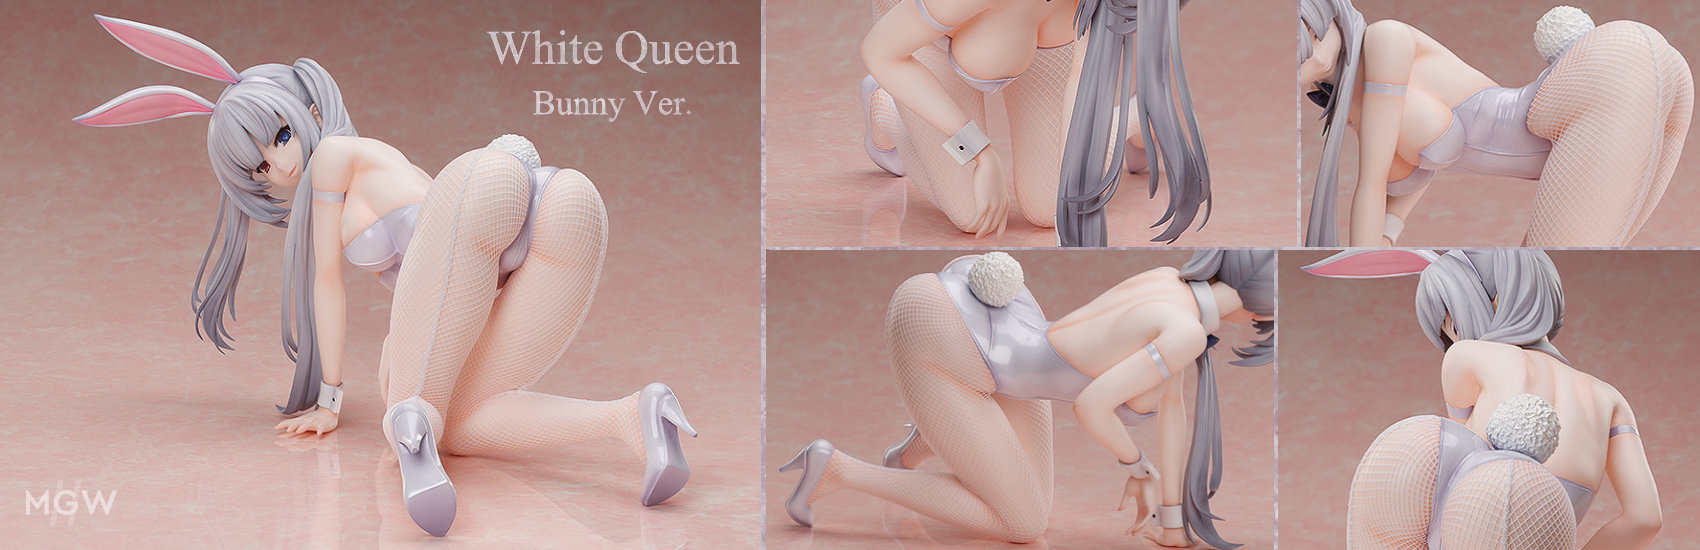 White Queen Bunny Ver. by FREEing from Date A Bullet MGW Anime Figure Pre order Guide